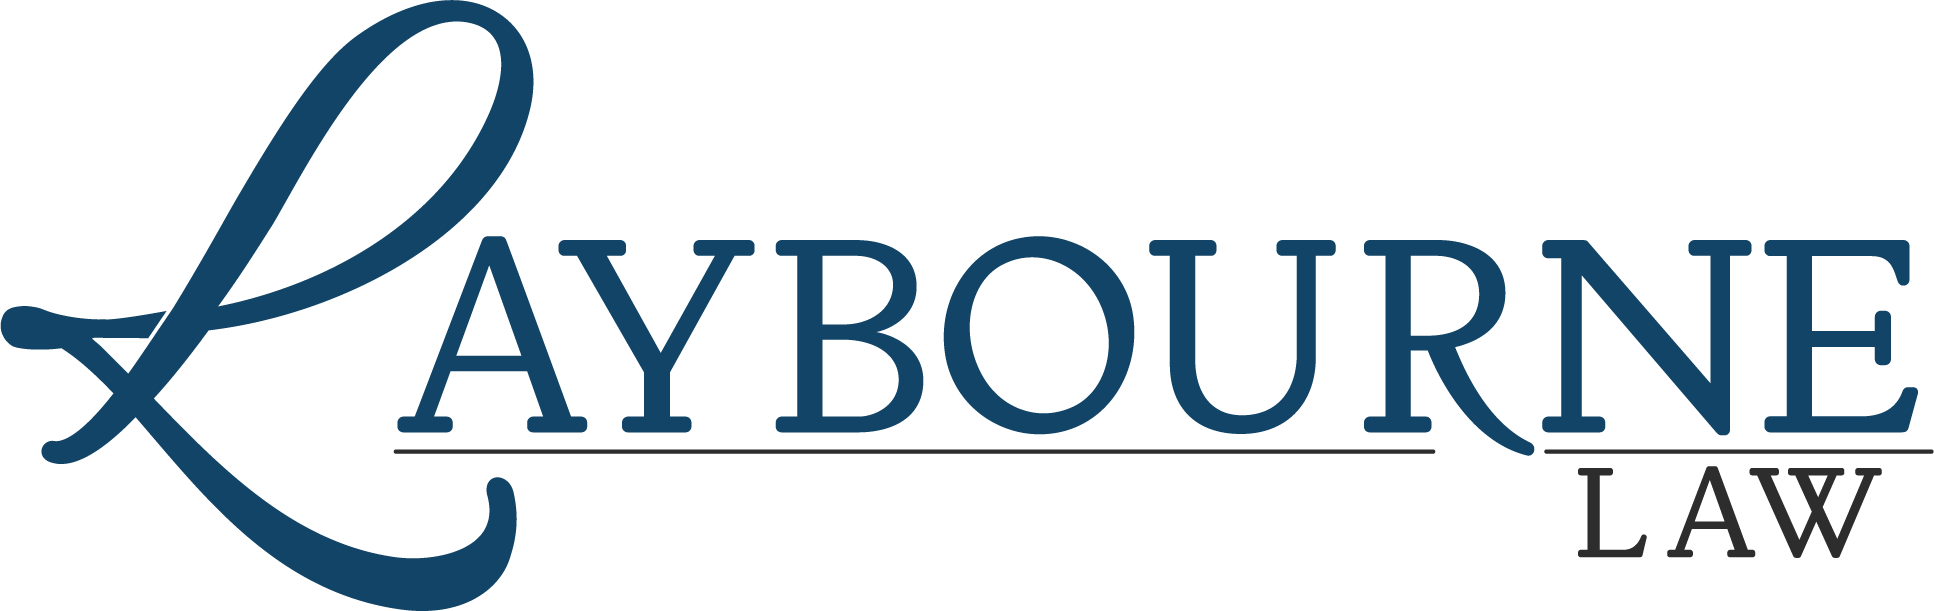 Laybourne Law - Attorneys at Law  |  Robert Laybourne & Jeff Laybourne  |  Akron - Summit County - Northeast Ohio Logo